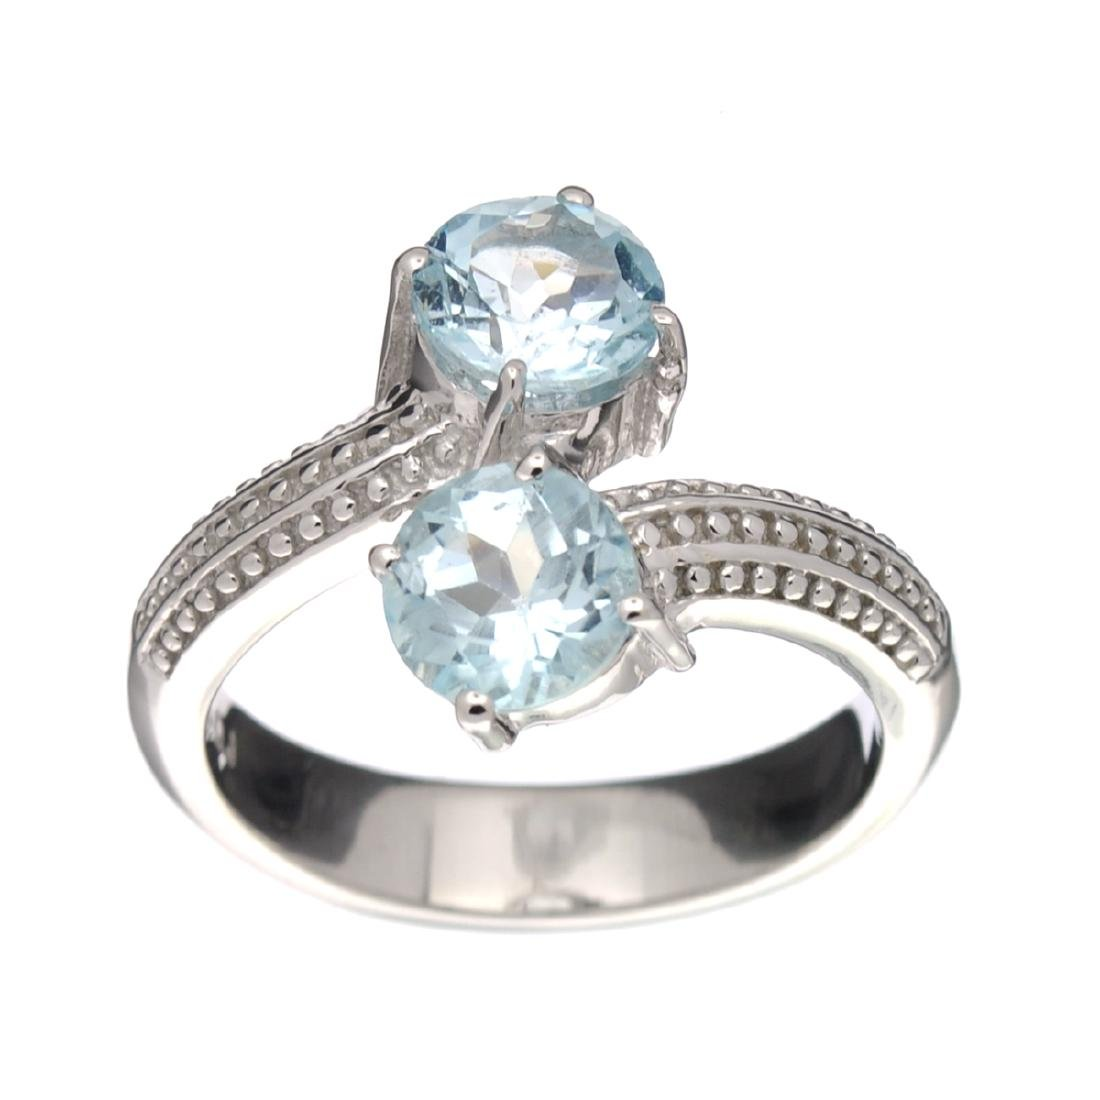 APP: 0.5k Fine Jewelry 2.10CT Round Cut Blue Topaz And